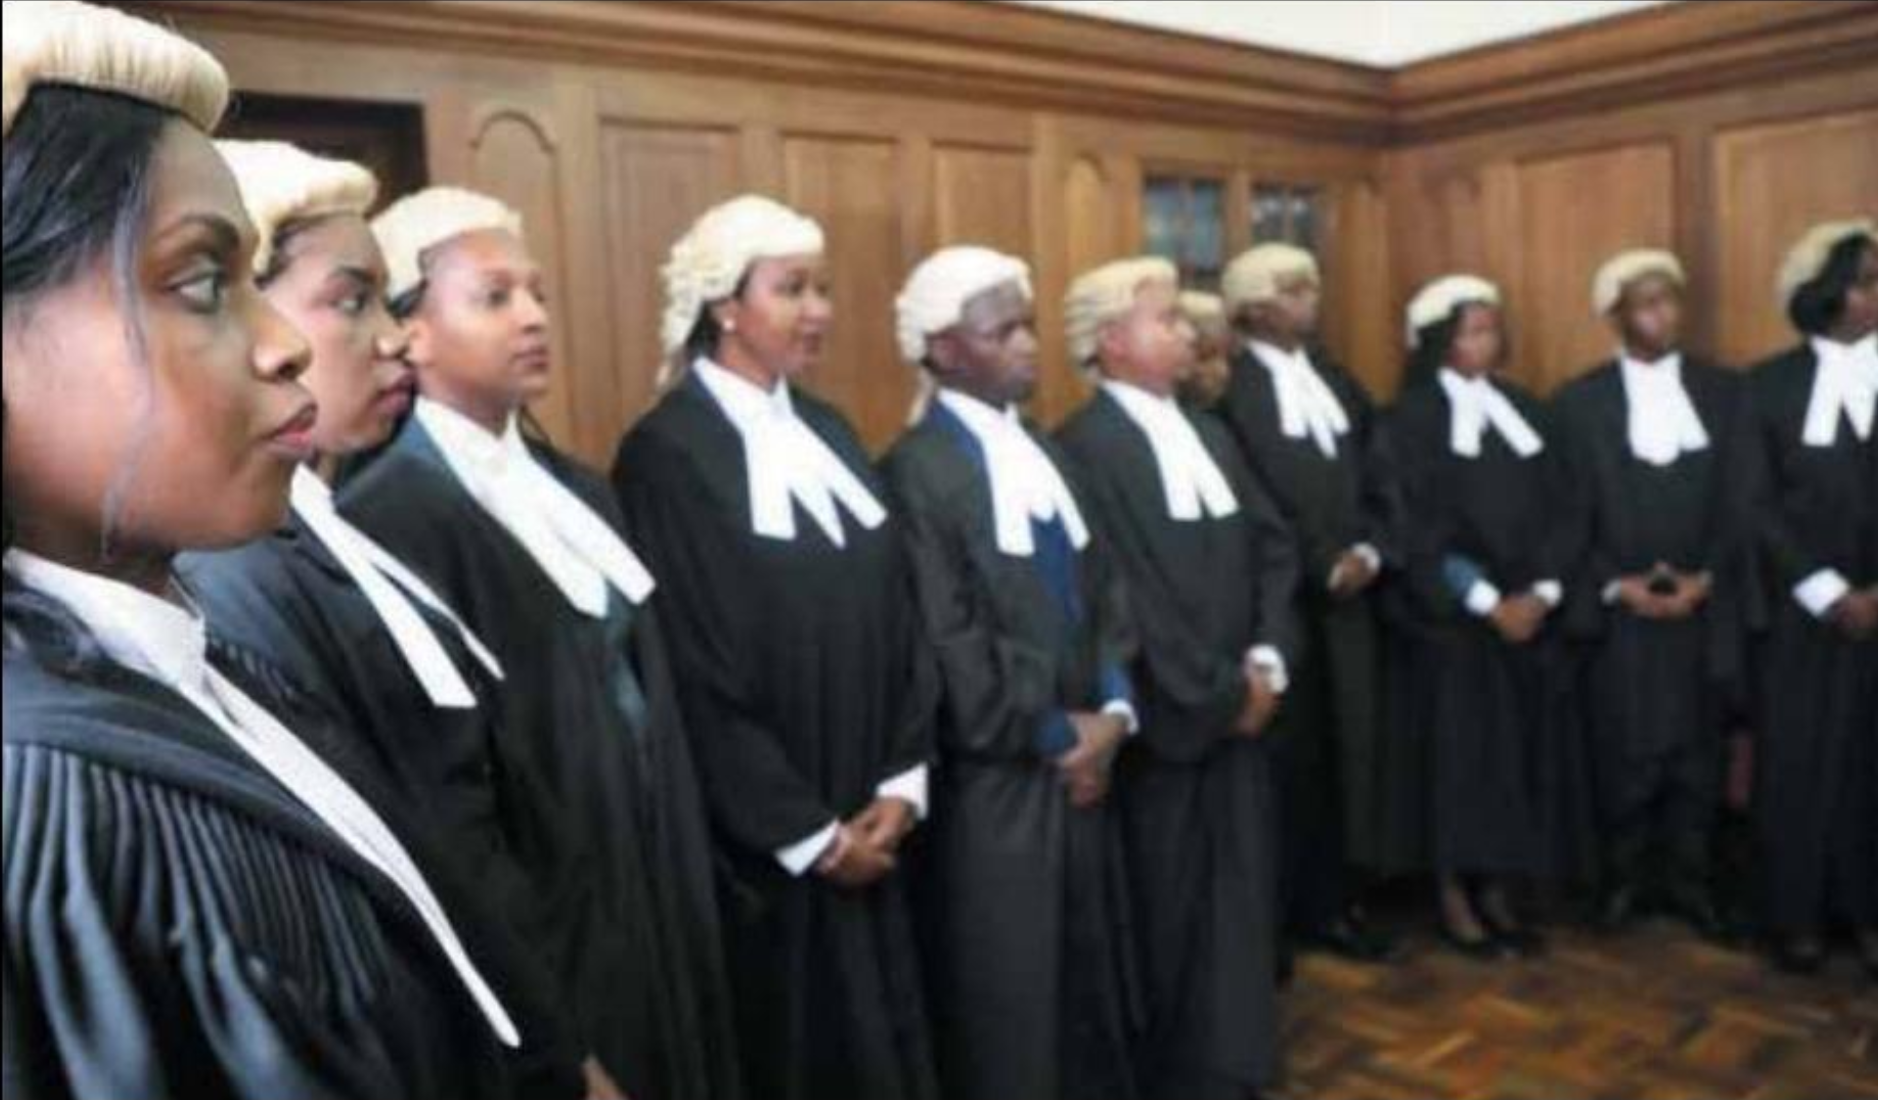 Photo of women judges standing in a row